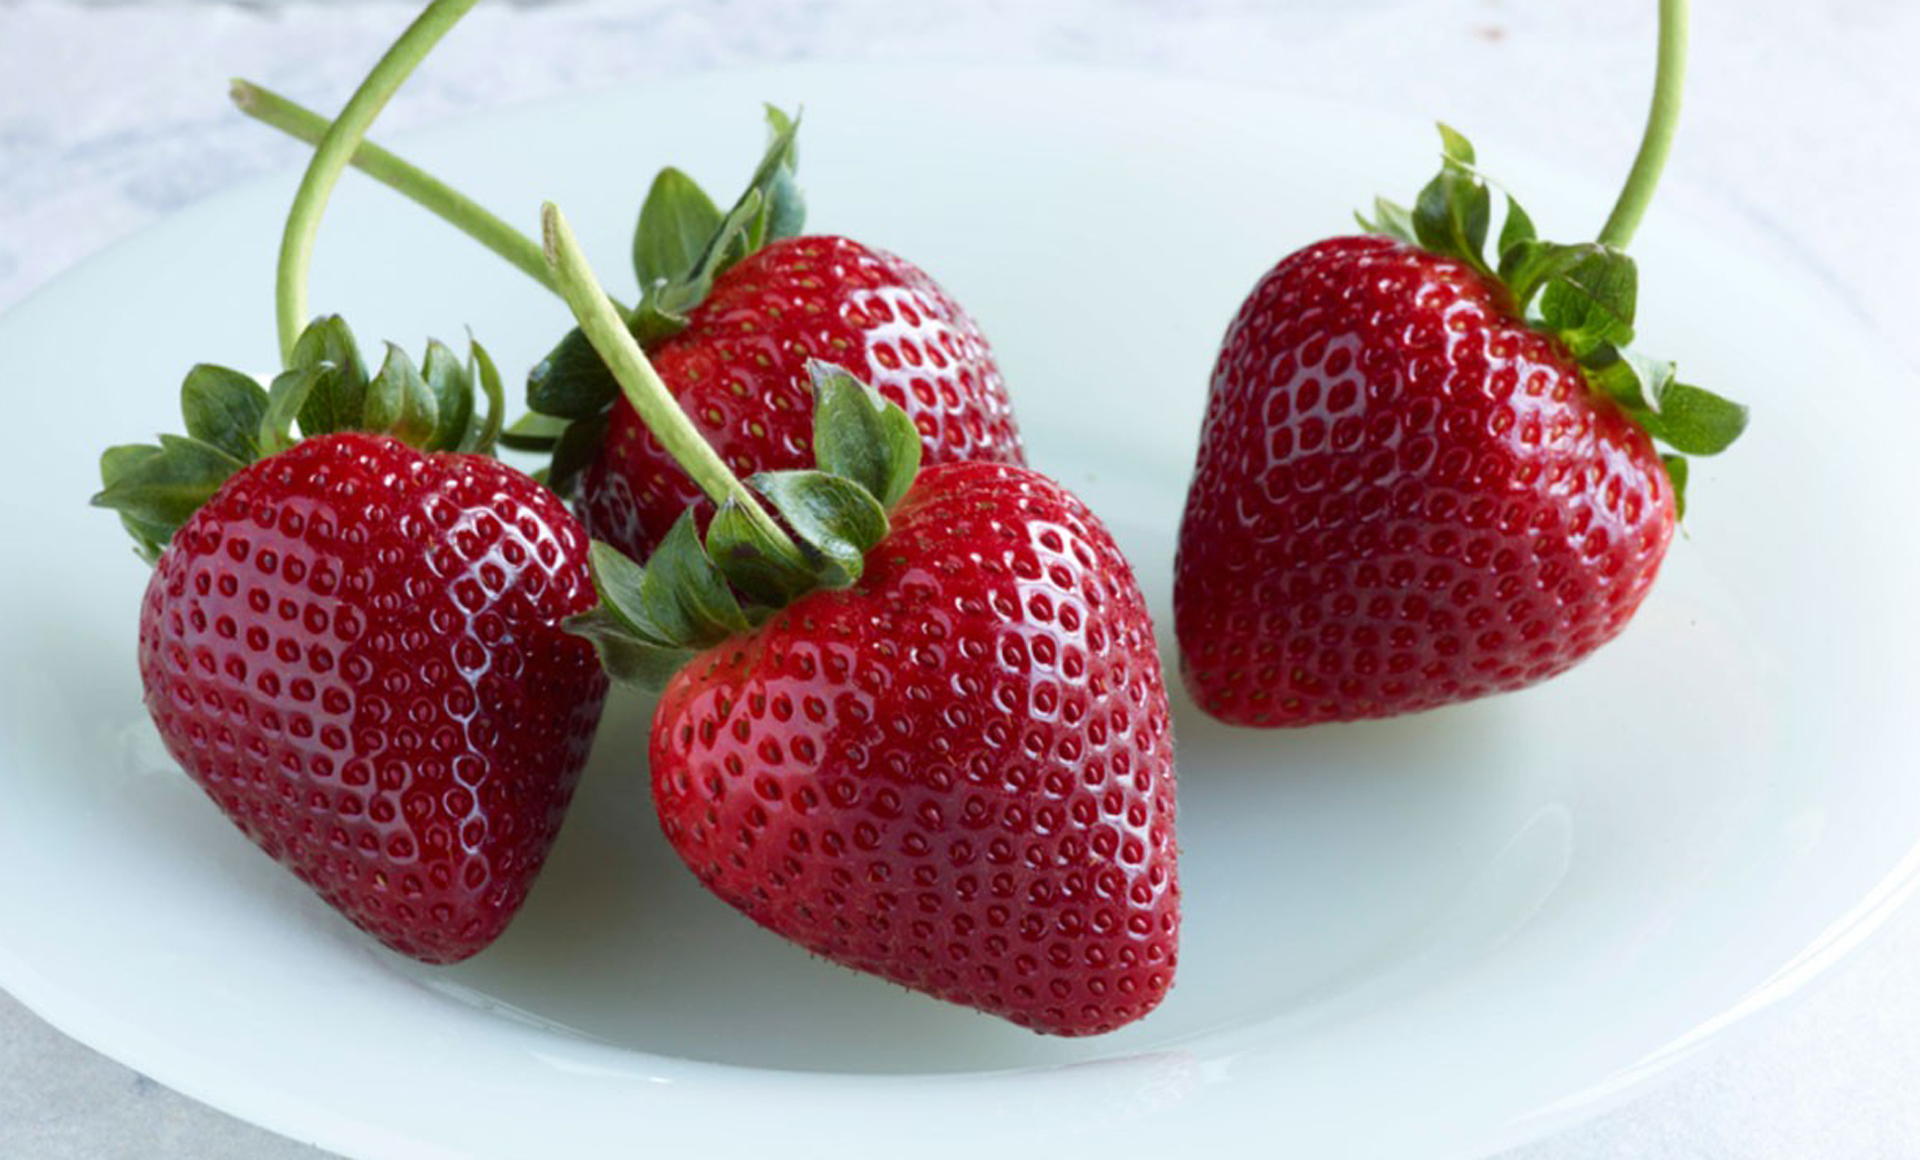 Strawberries and their berry brethren have recently become the most popular fruit.